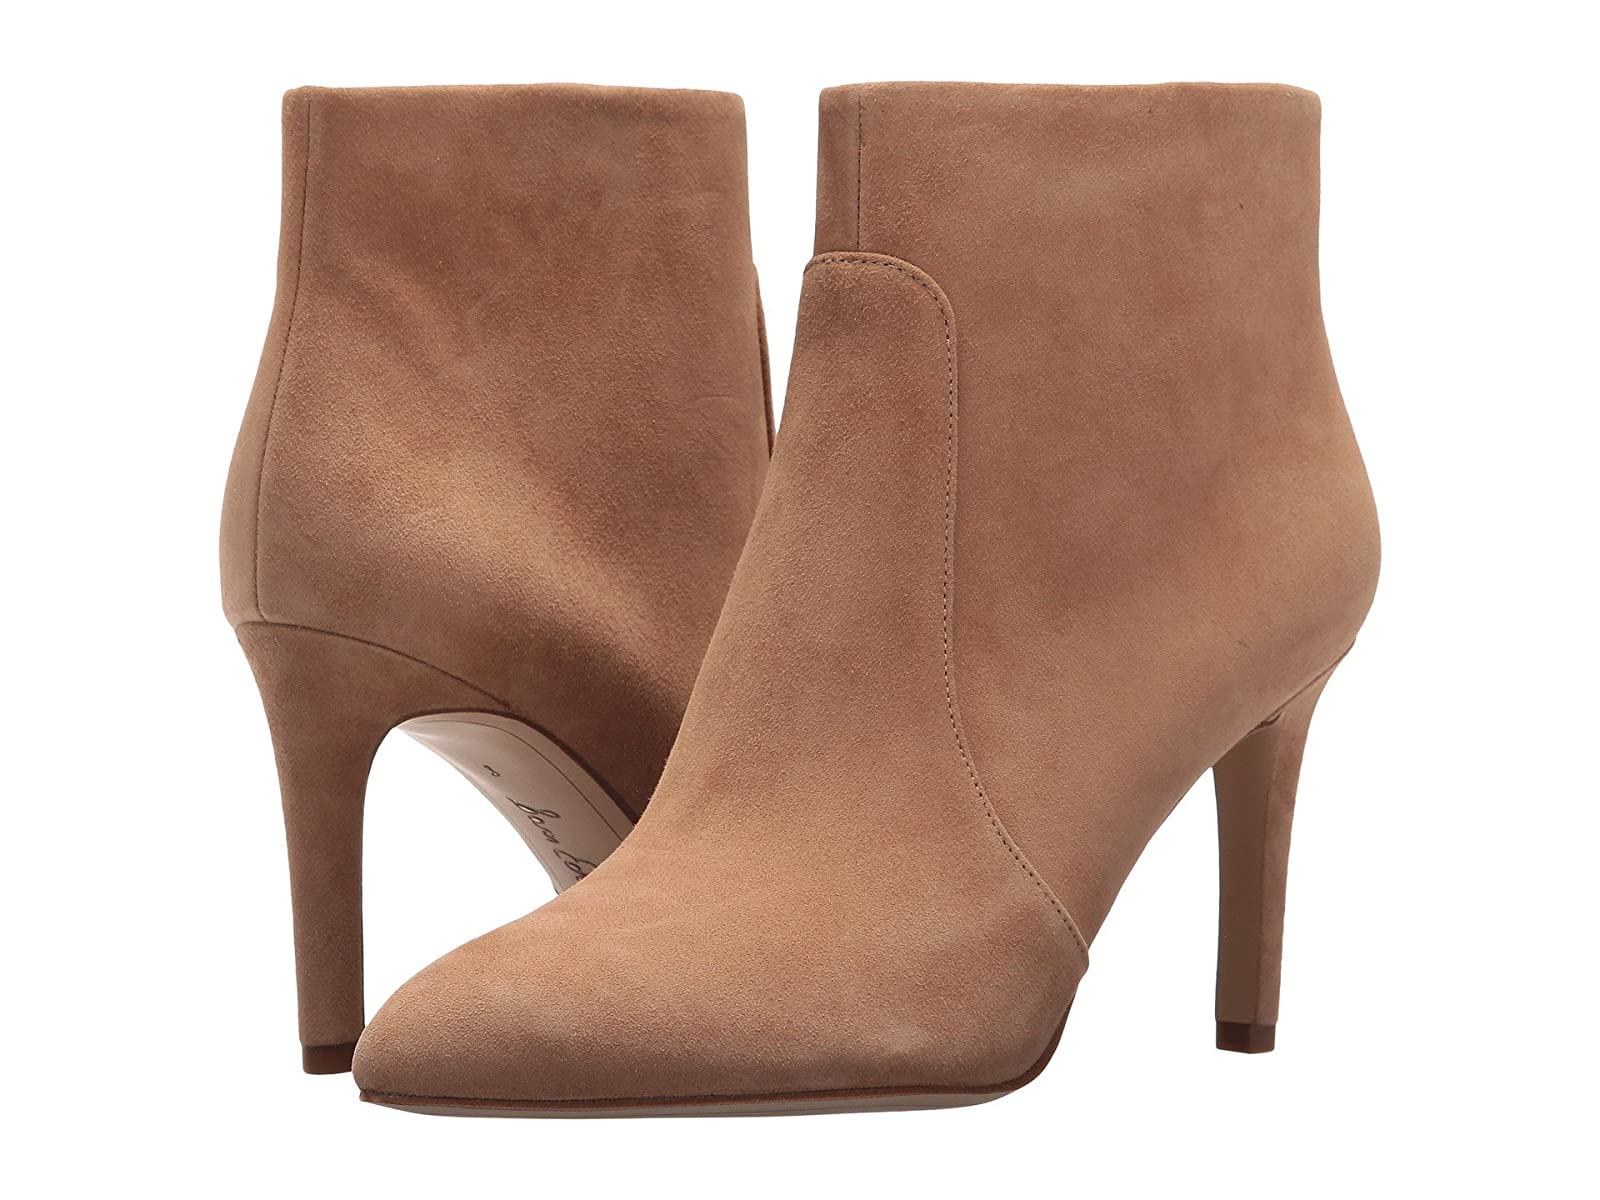 Sam Edelman OletteCheap and distinctive eye-catching shoes